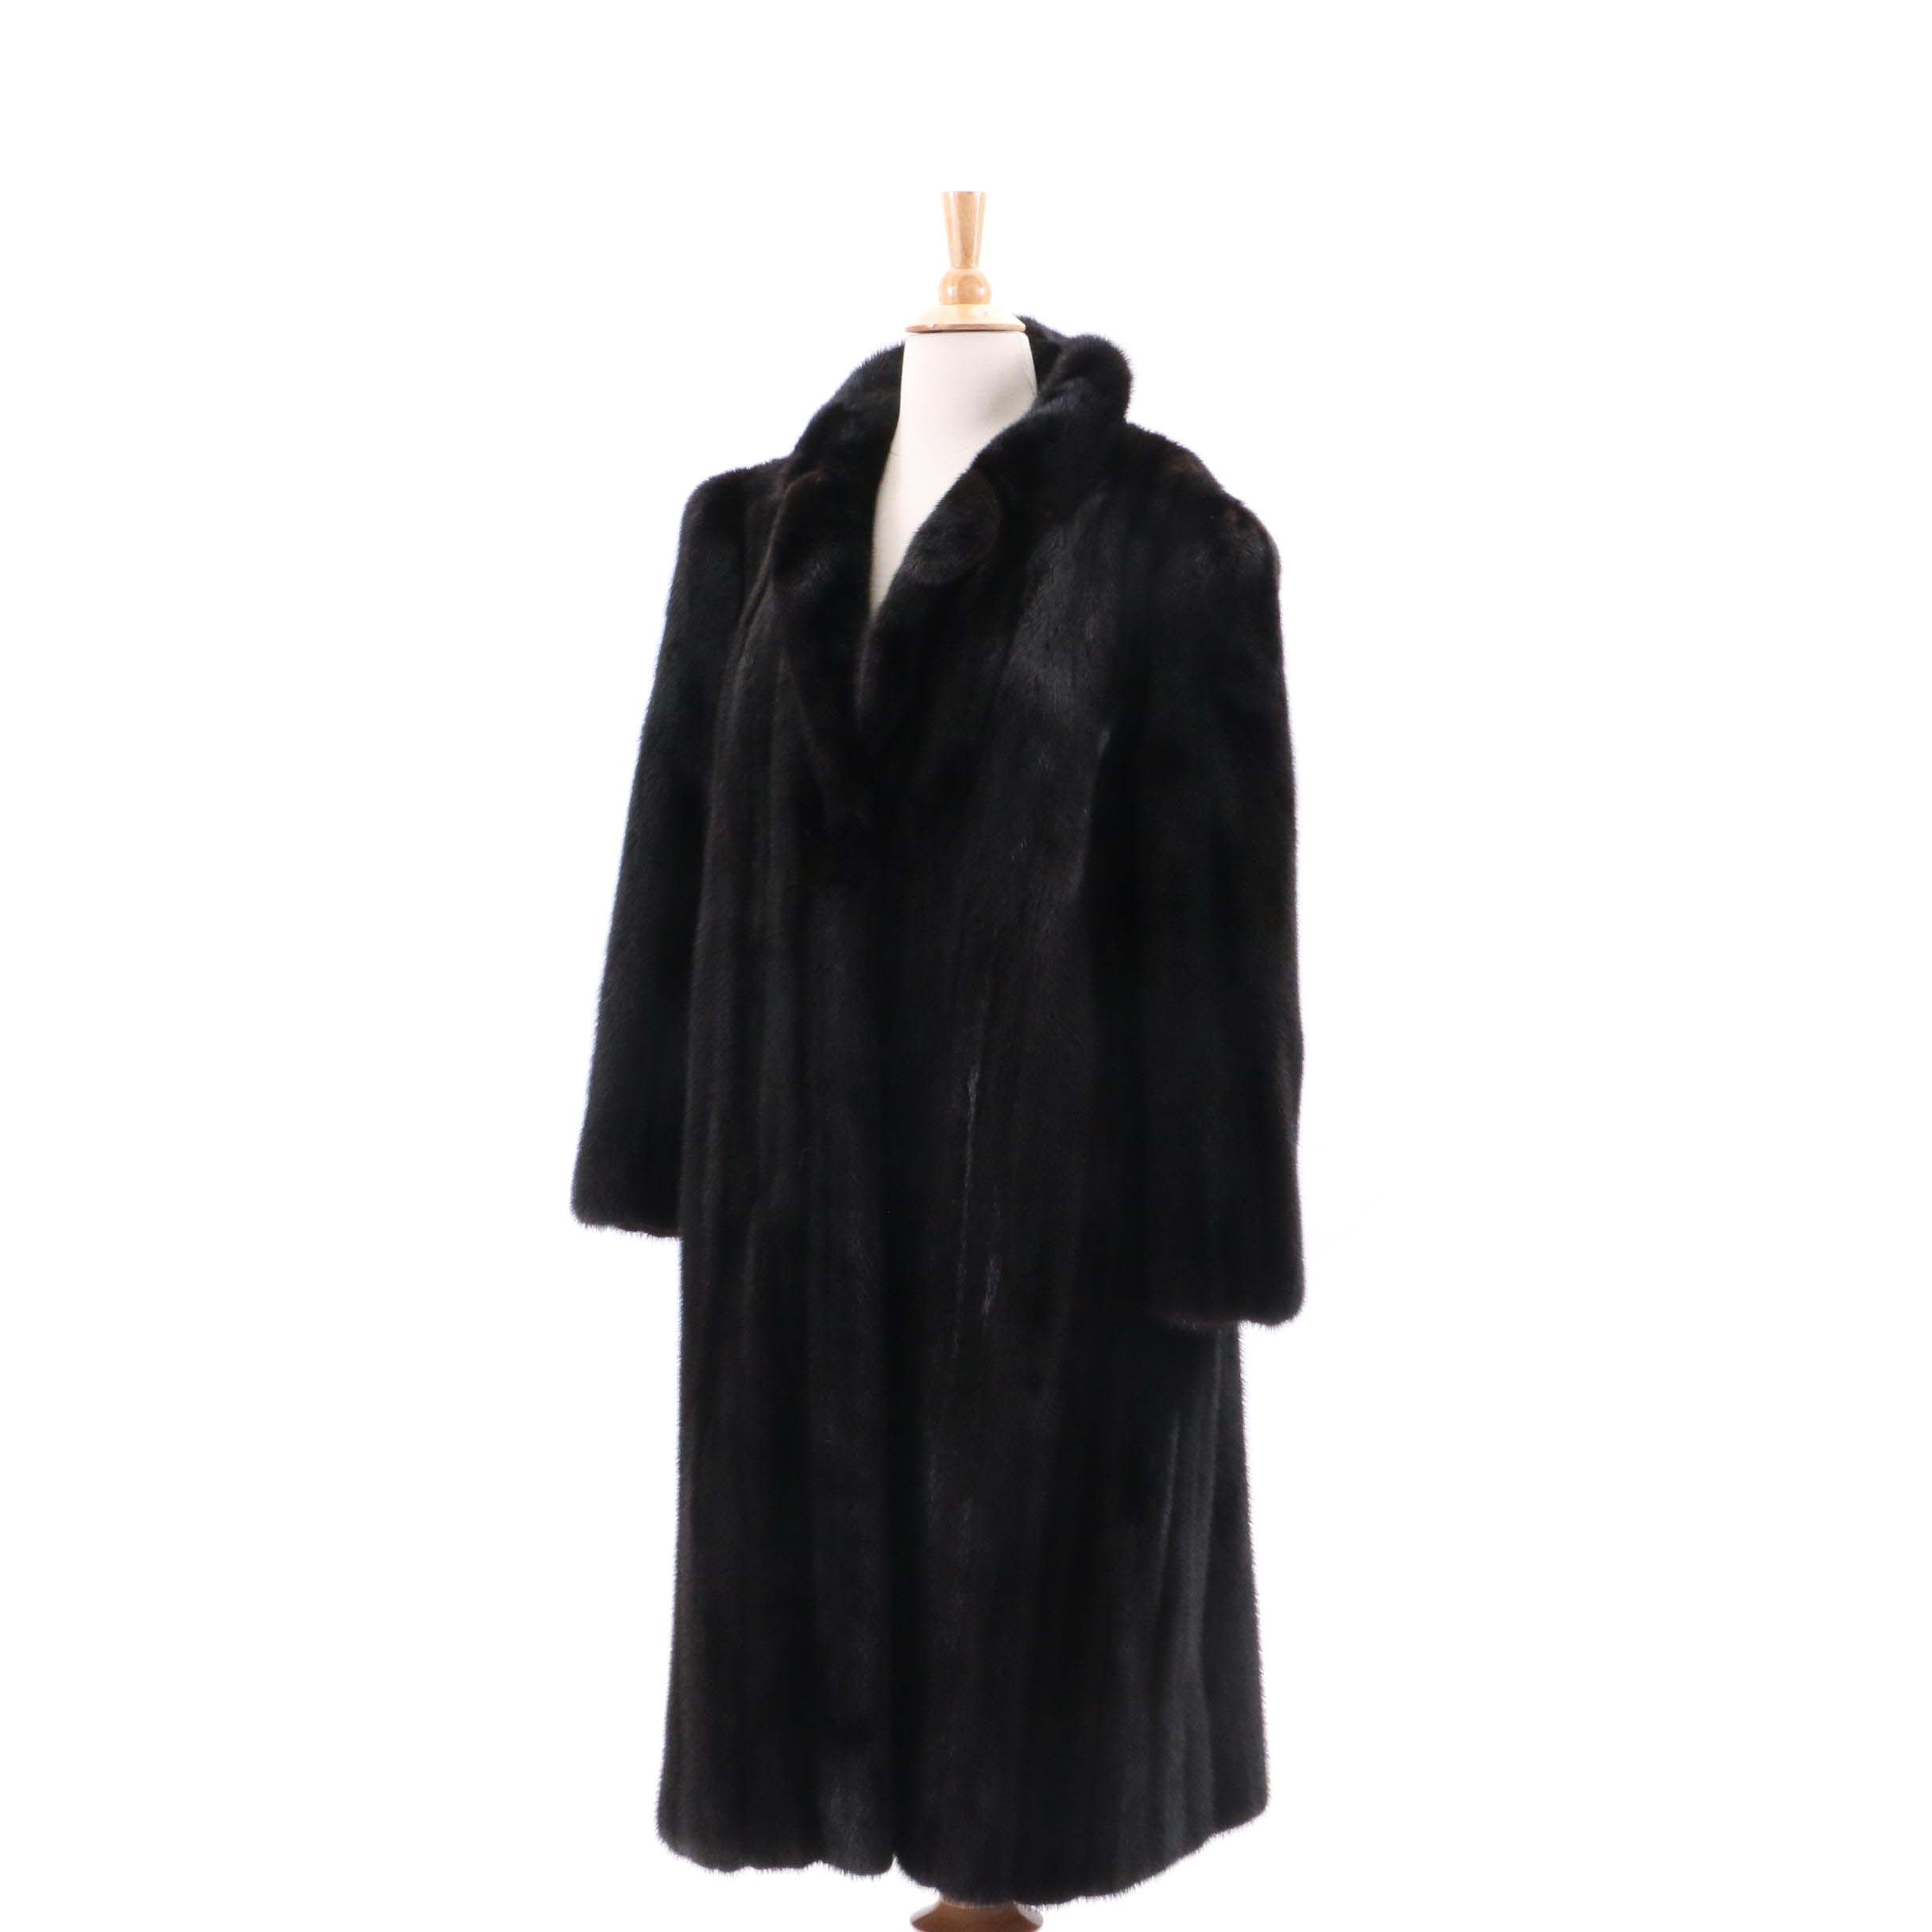 Lowenthal's Black Mink Fur Coat